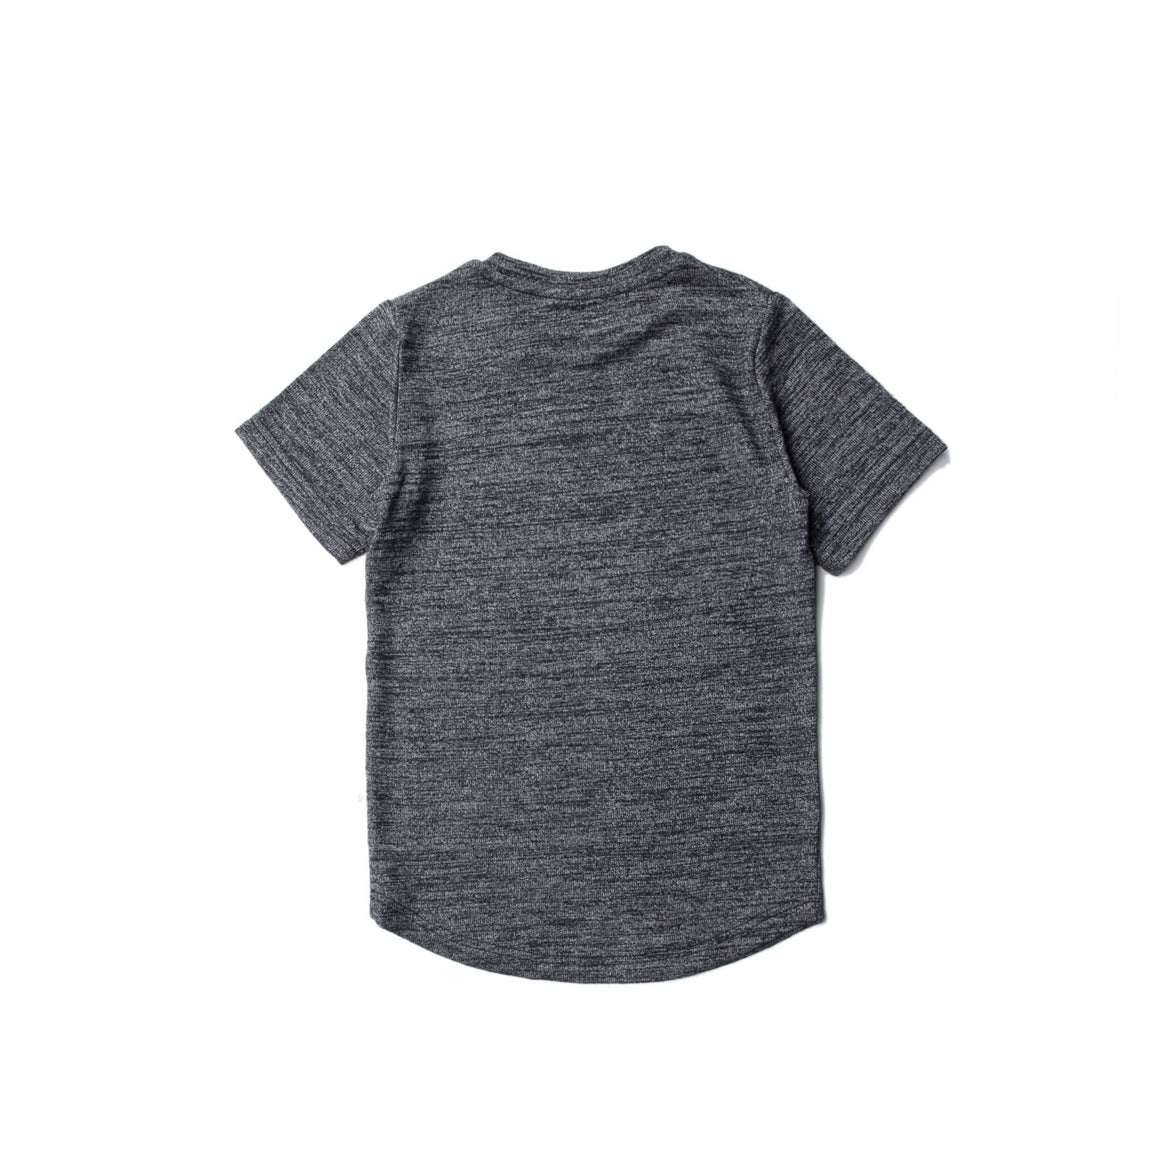 Landon Short Sleeve Shirt | Charcoal